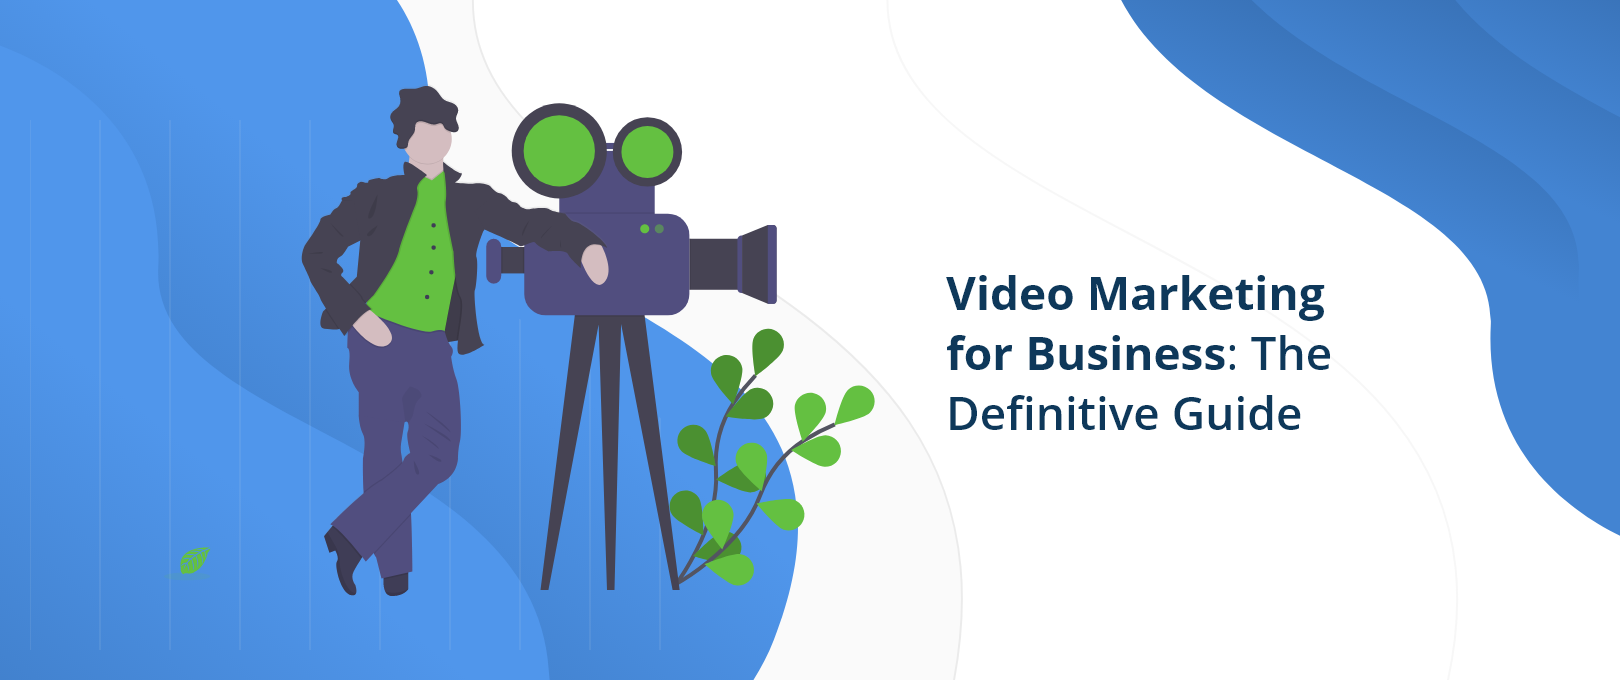 Video Marketing for Business The Definitive Guide@2x